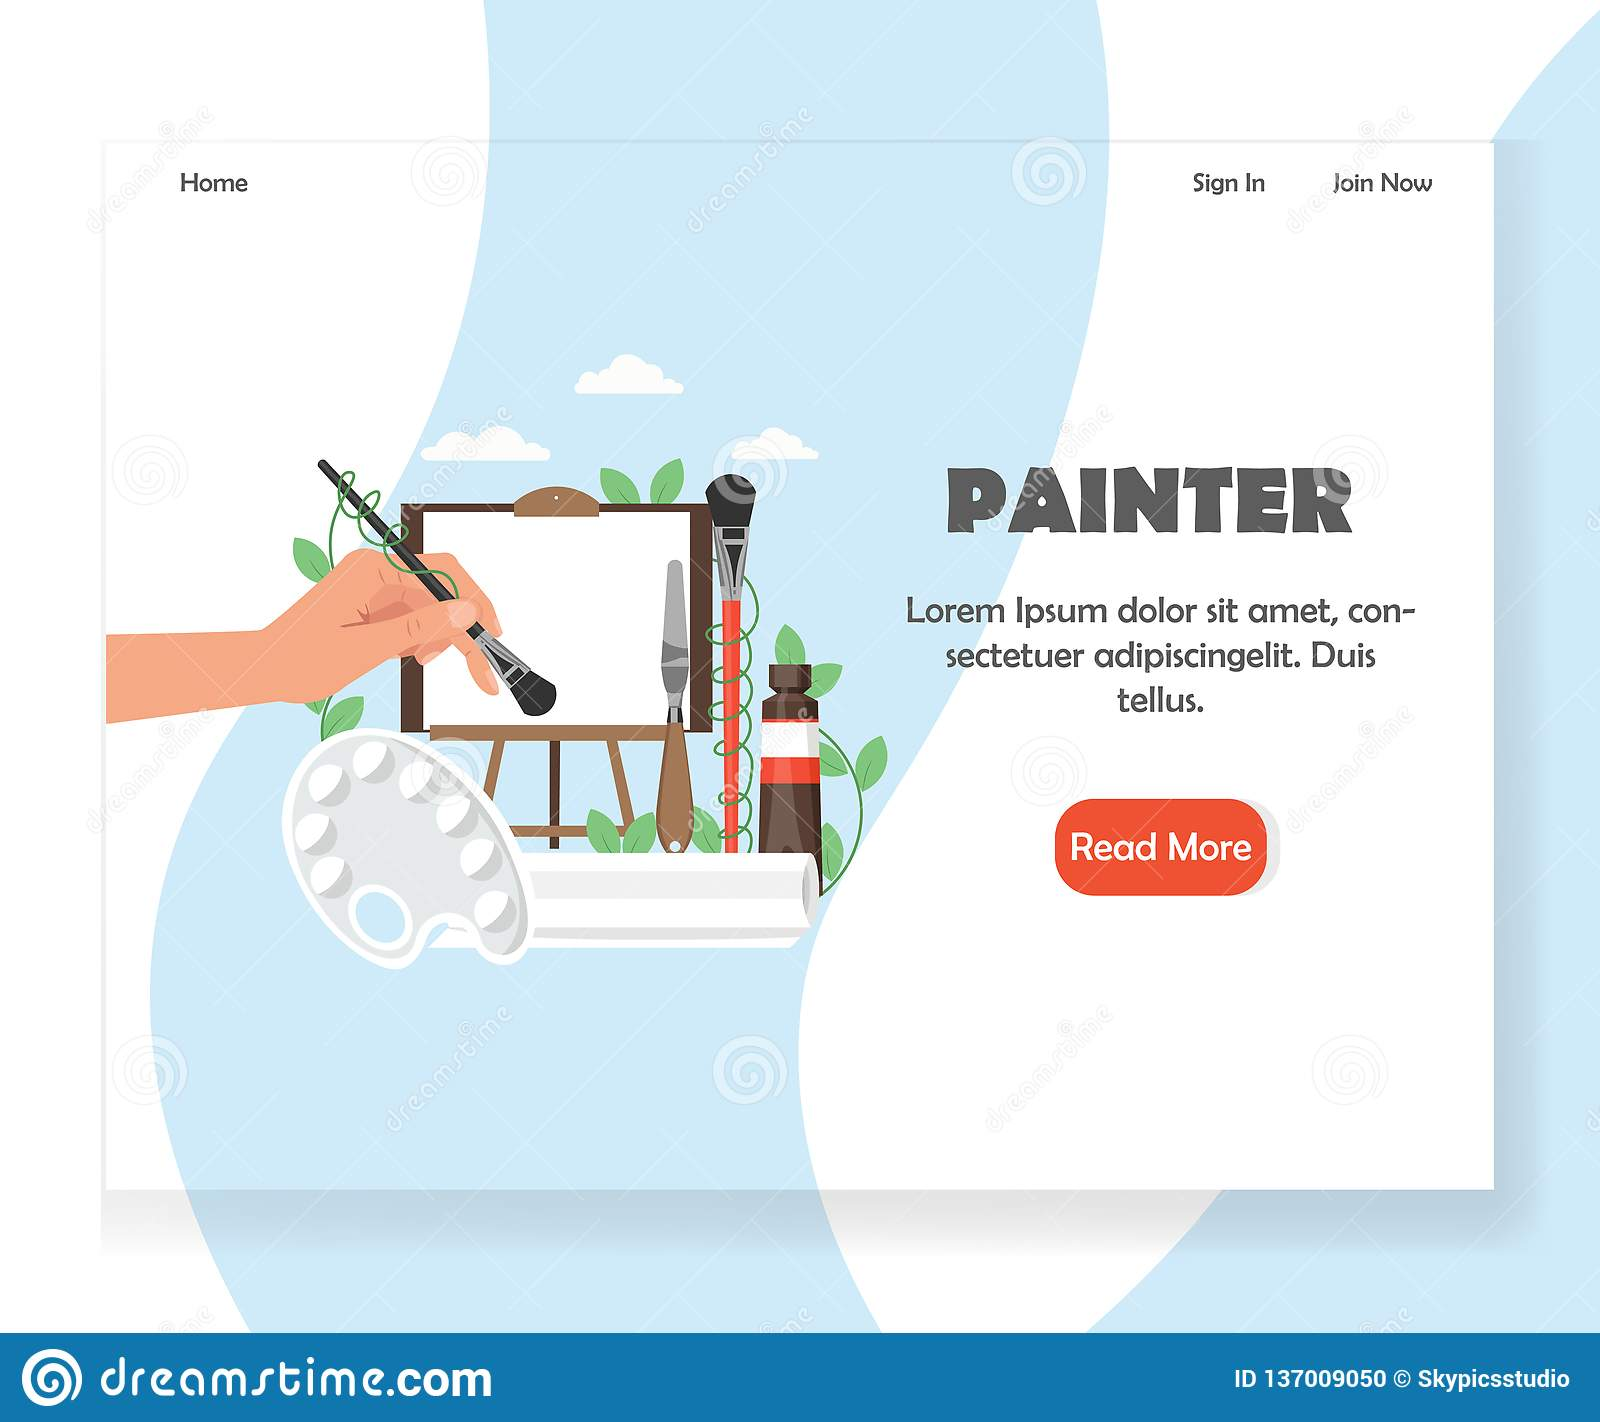 hight resolution of painter landing page template vector flat style design concept for artist website and mobile site development human hand holding paintbrush palette